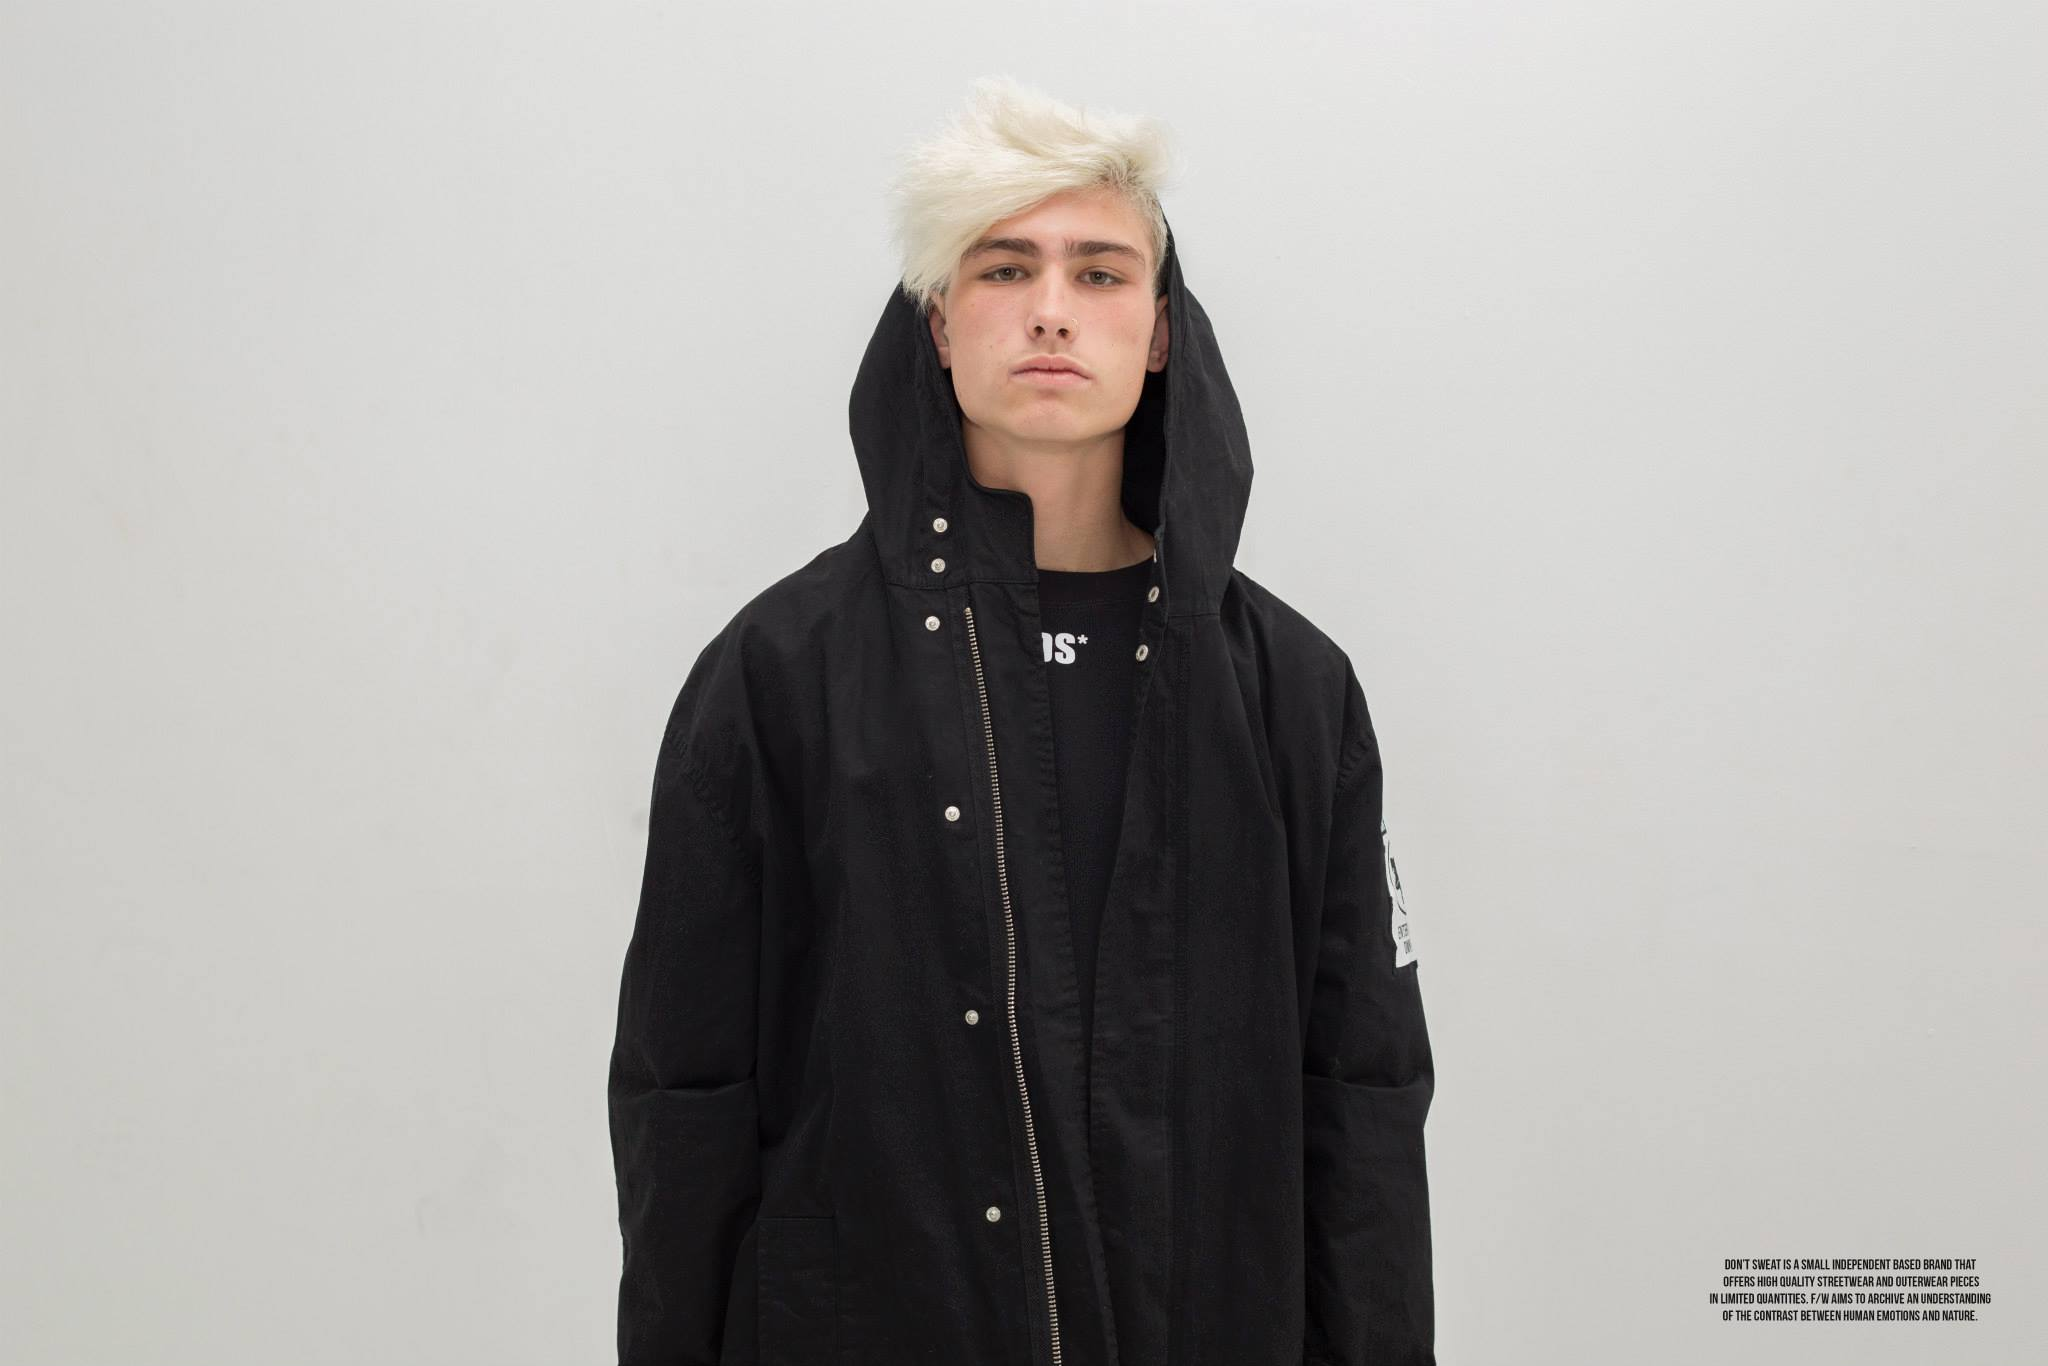 This streetwear label by a 17-year-old designer will blow your mind